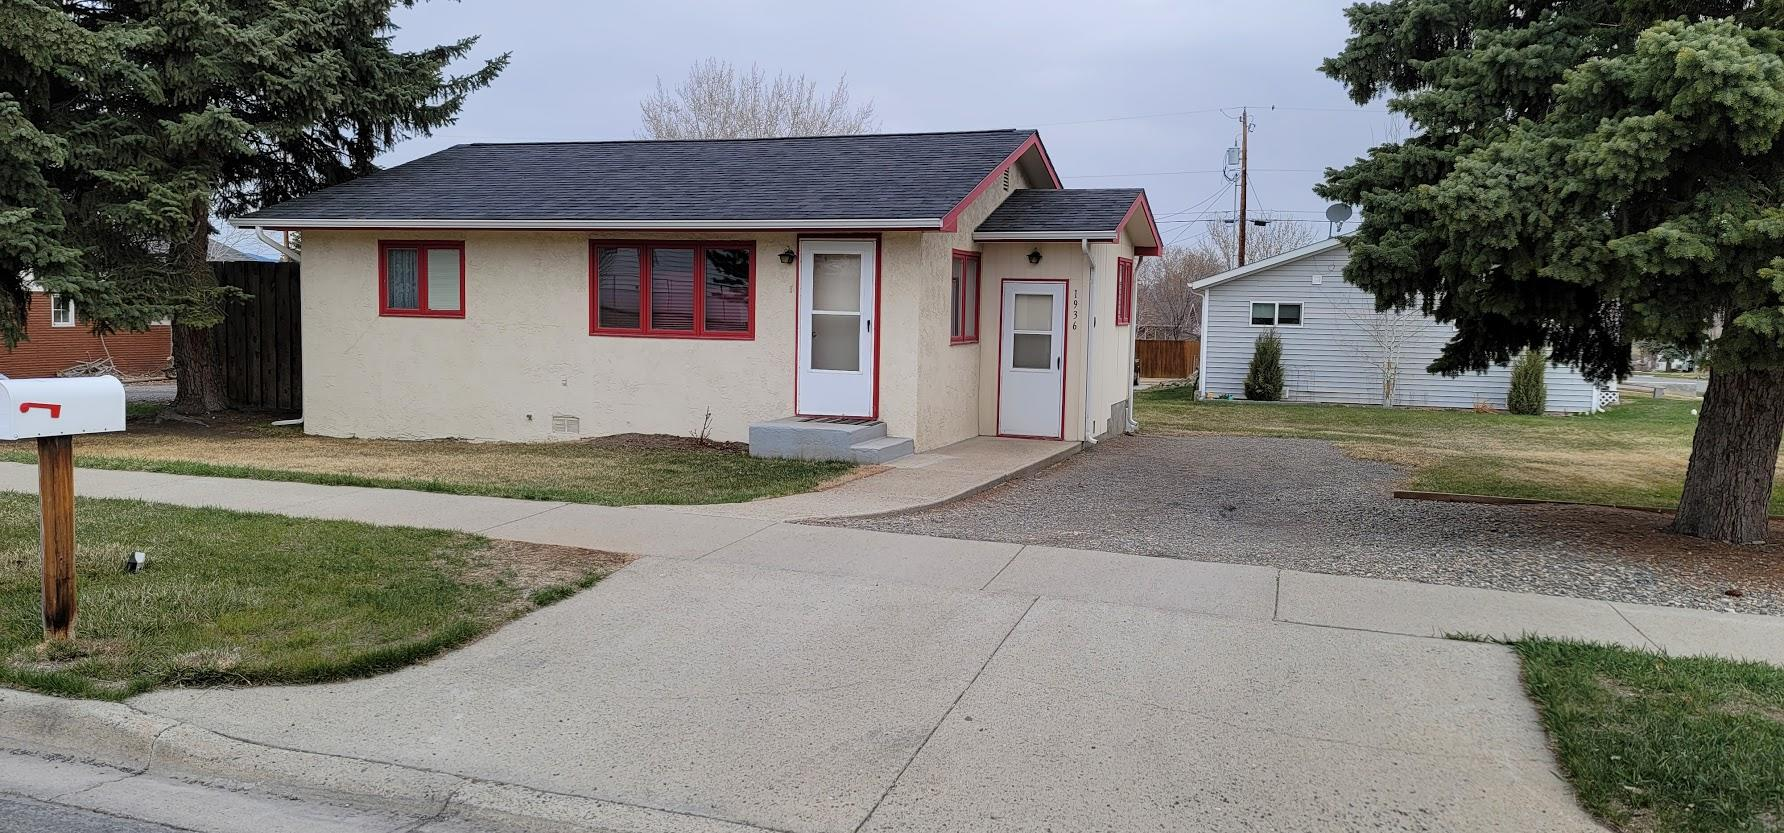 This cute one level home has 1 bedroom/1 bathroom.  With a few updates, this house would be perfect for a rental or a small home.  Call Dan & Cortney Senecal at 406-439-7557, or your real estate professional.*Storage Shed not included